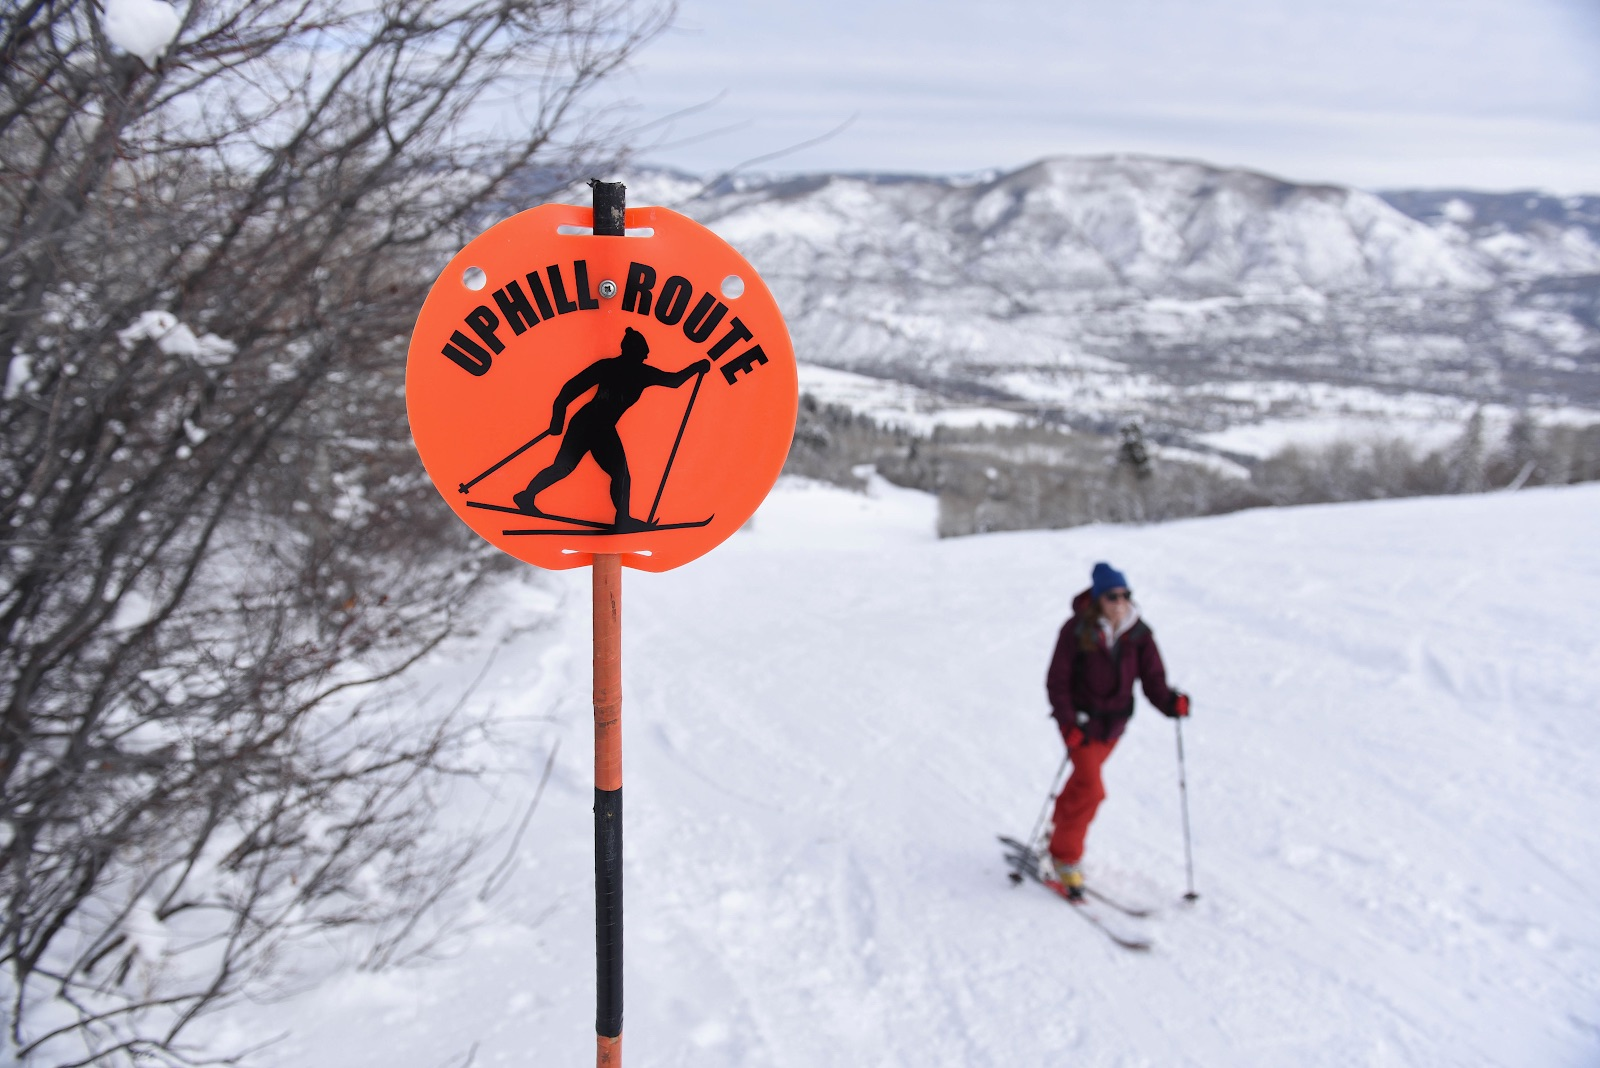 Skinning up a designated trail at Buttermilk Ski Resort in Colorado